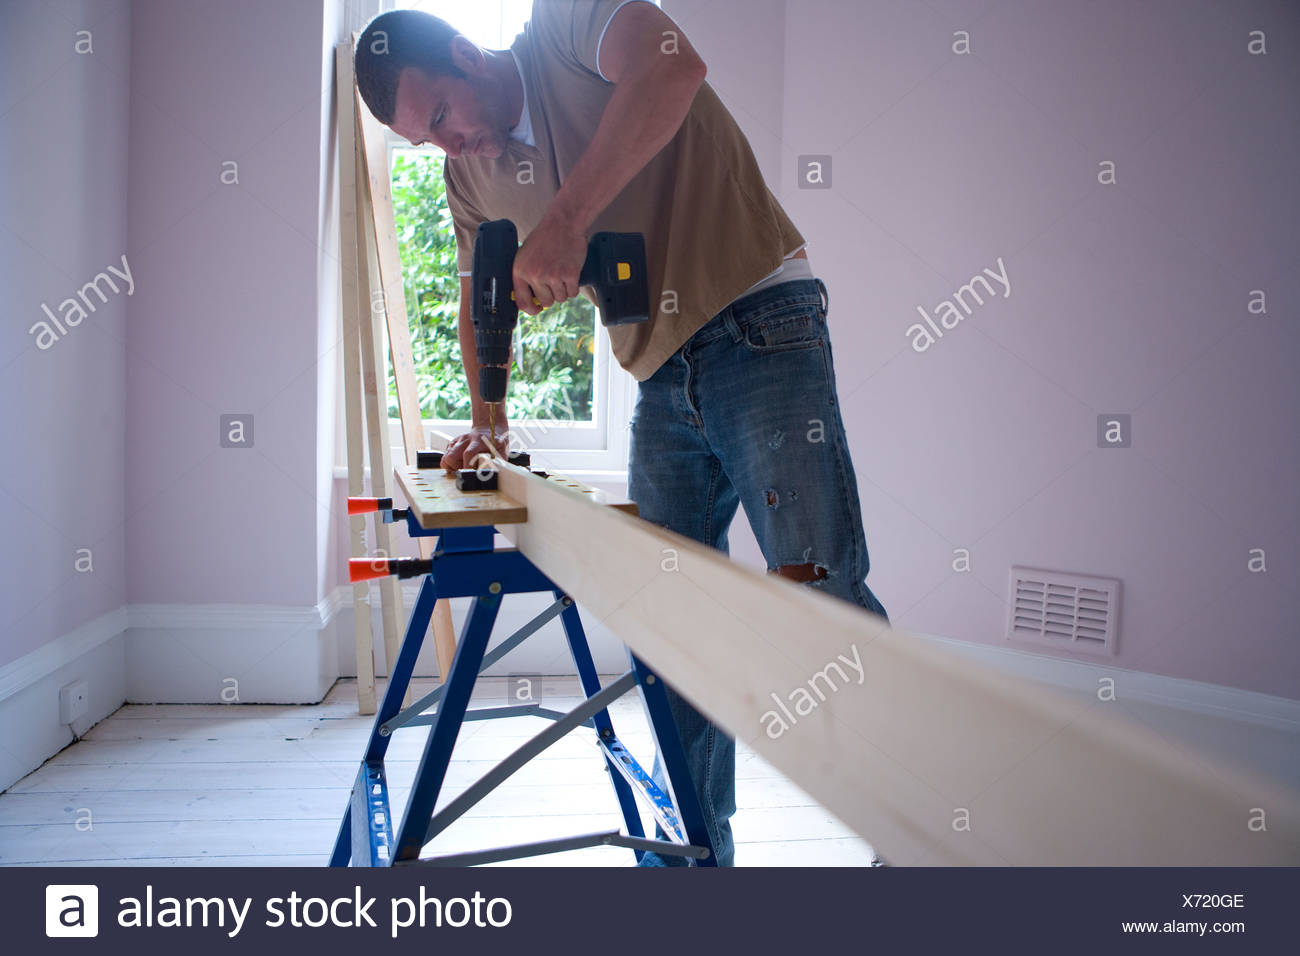 Man using electric drill on beam - Stock Image